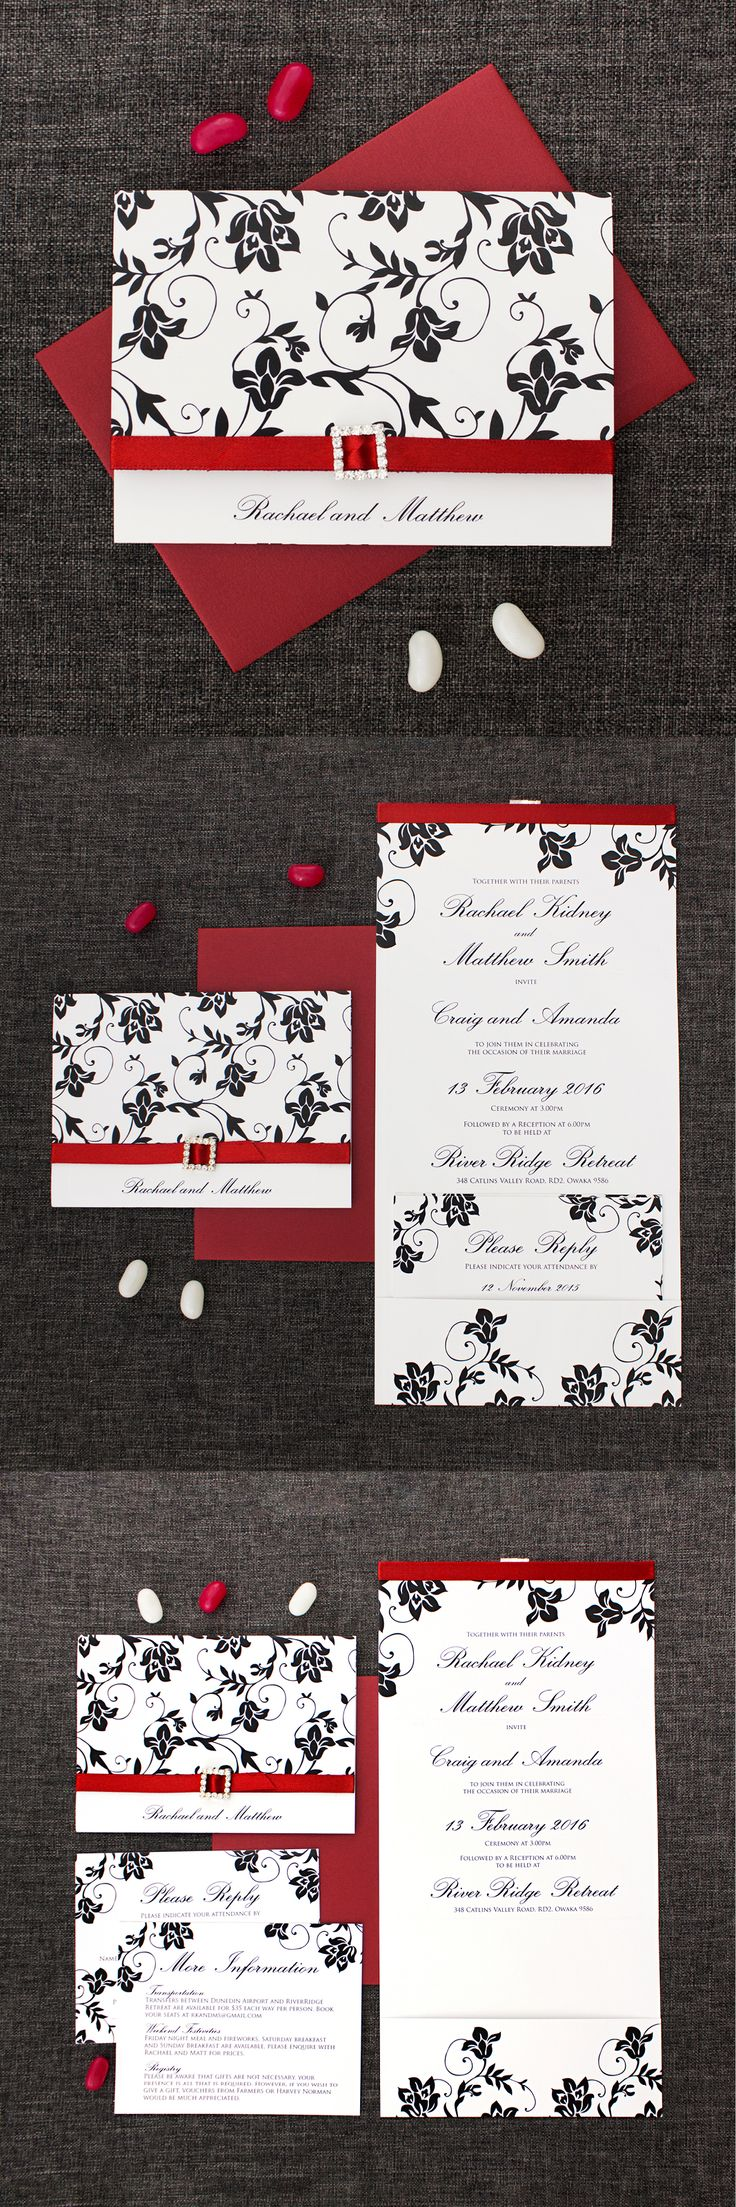 Michaels crafts wedding invitations - The Classic Concertina Wedding Invitation